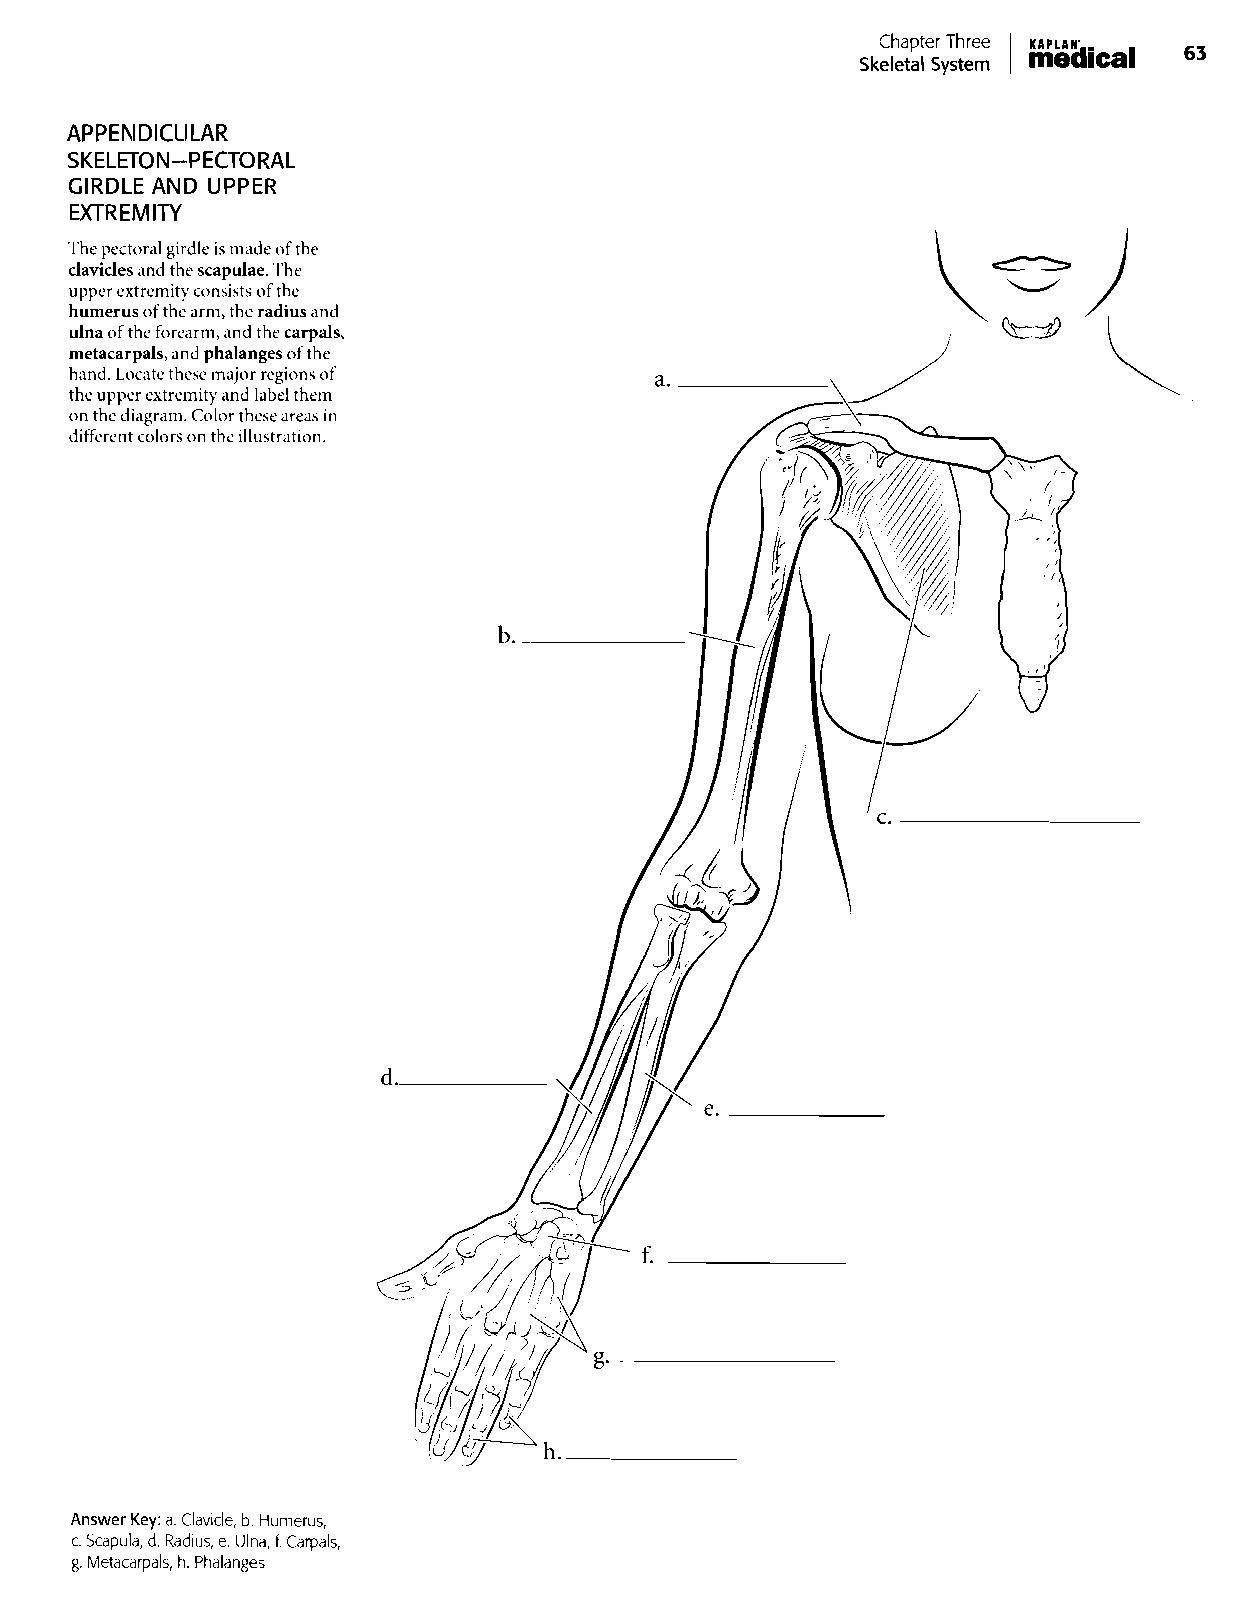 Anatomy Coloring Book Pdf Unique Coloring Design Coloring Designomy Book Pages Page Free With The Anatomy Coloring Book Coloring Books Coloring Book Set